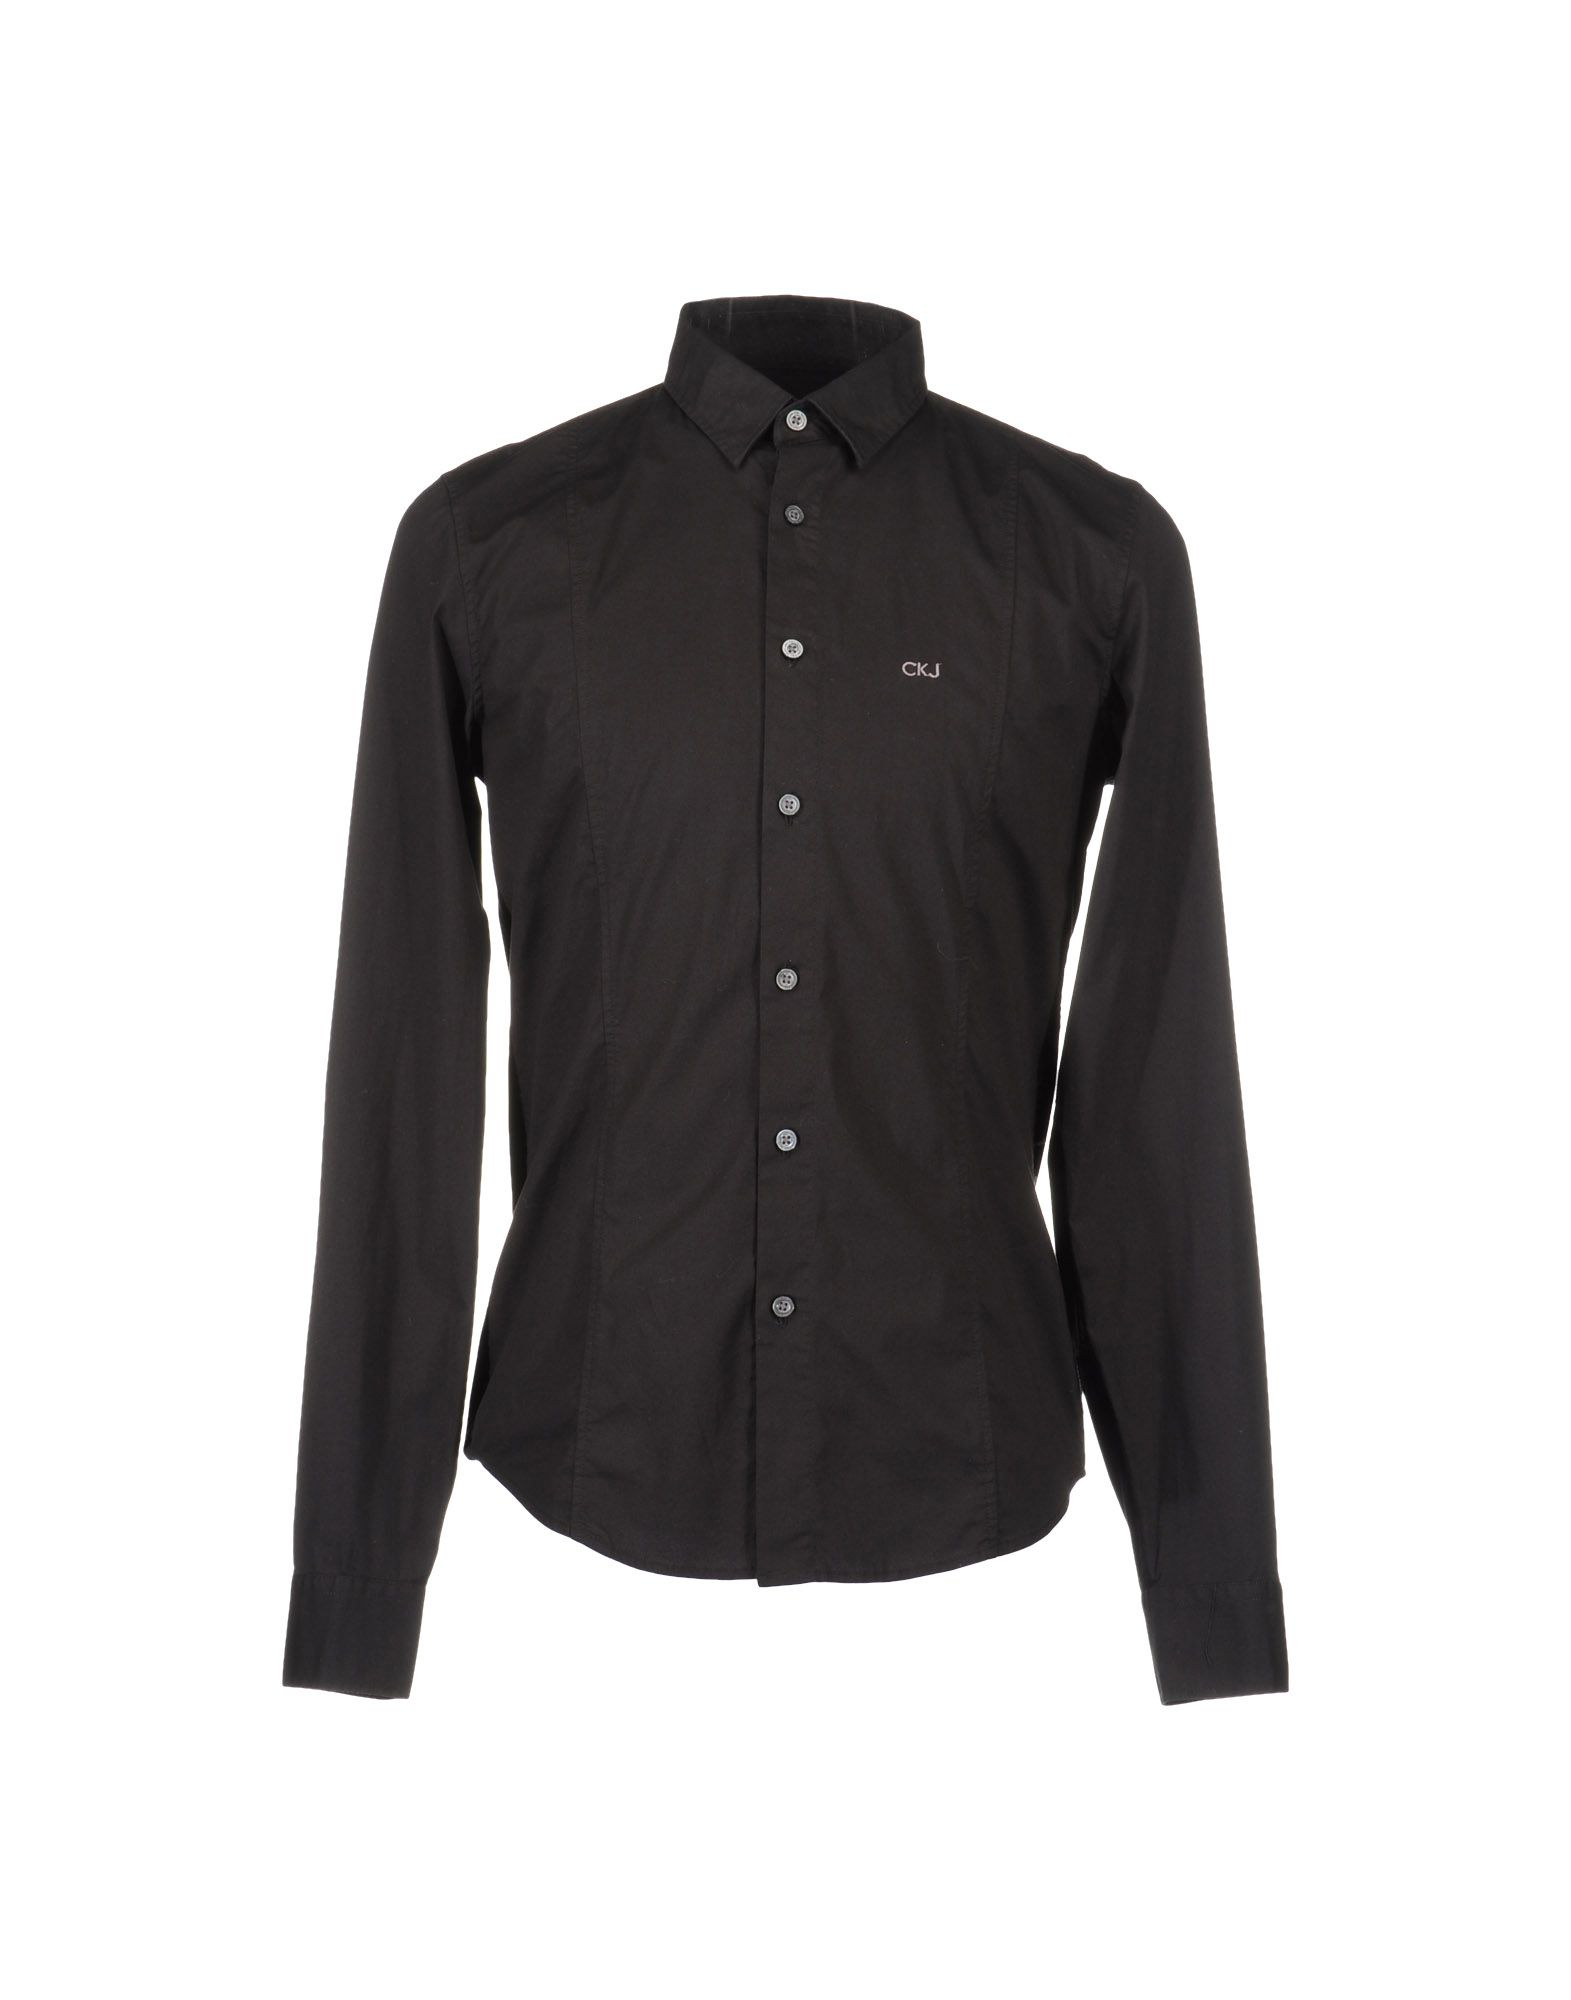 Calvin klein jeans long sleeve shirt in black for men lyst for Calvin klein dress shirts sale